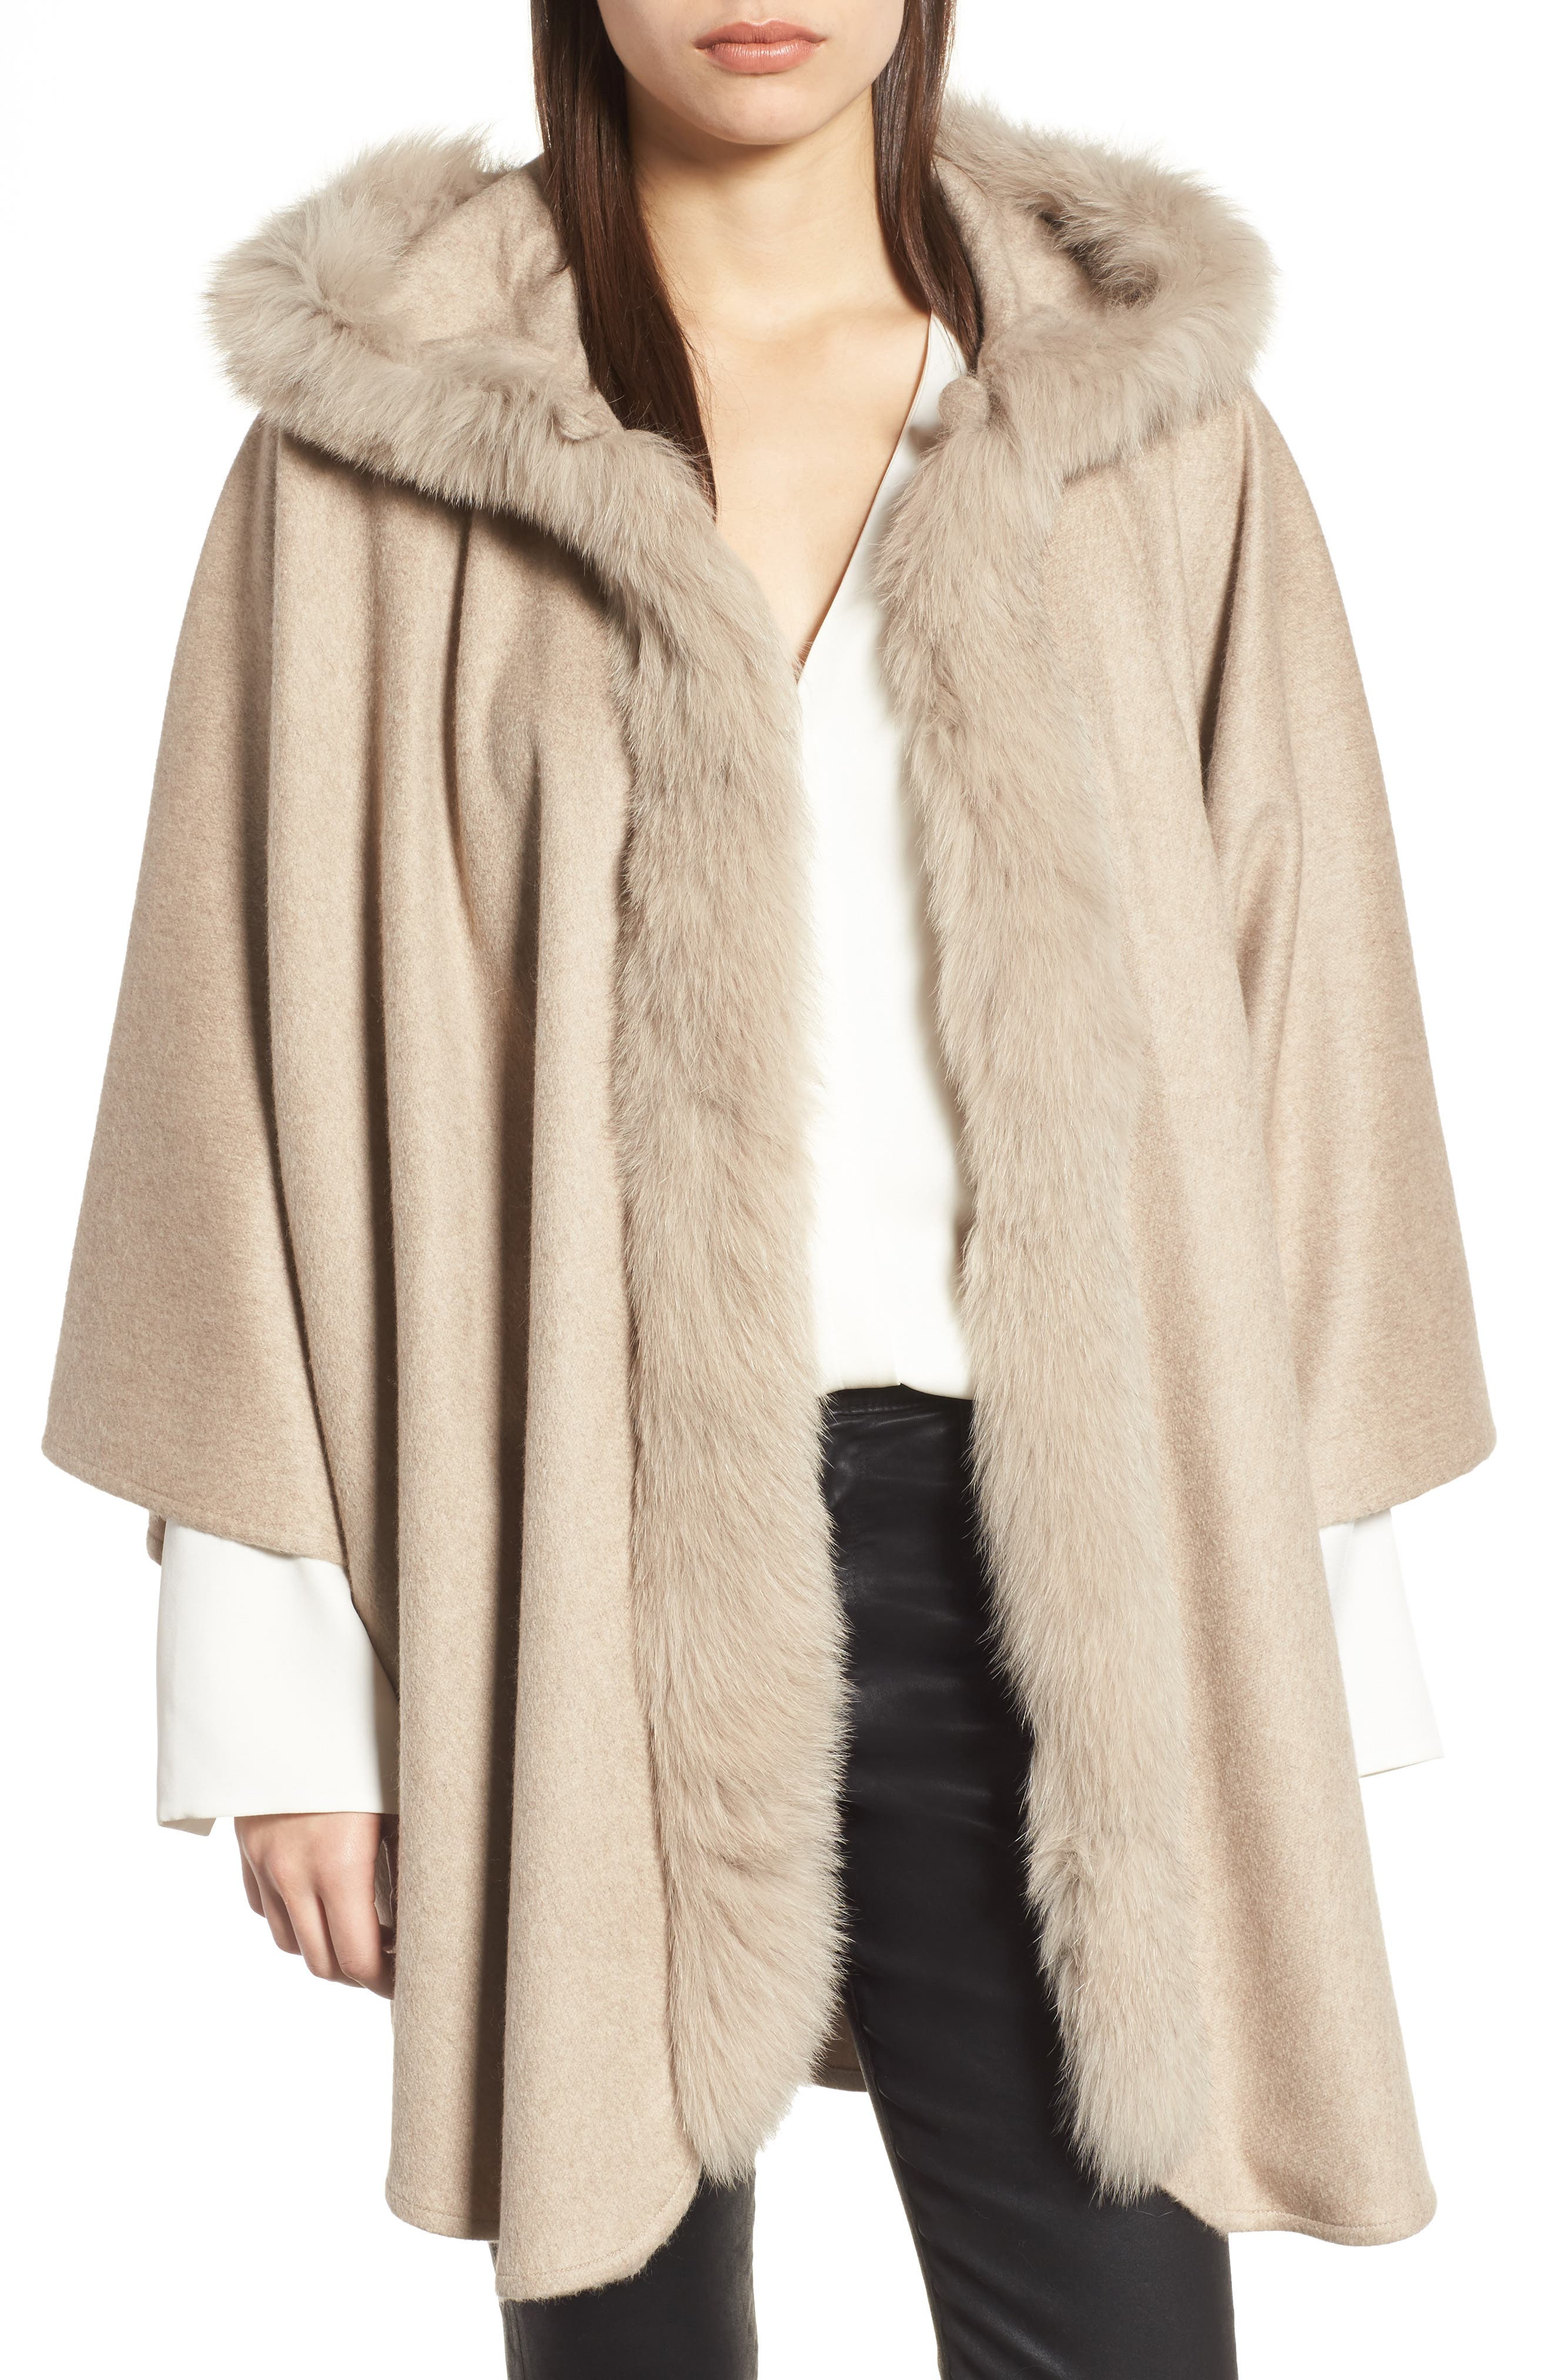 Cashmere Hooded Cape with Genuine Fox Fur Trim,                             Main thumbnail 1, color,                             020